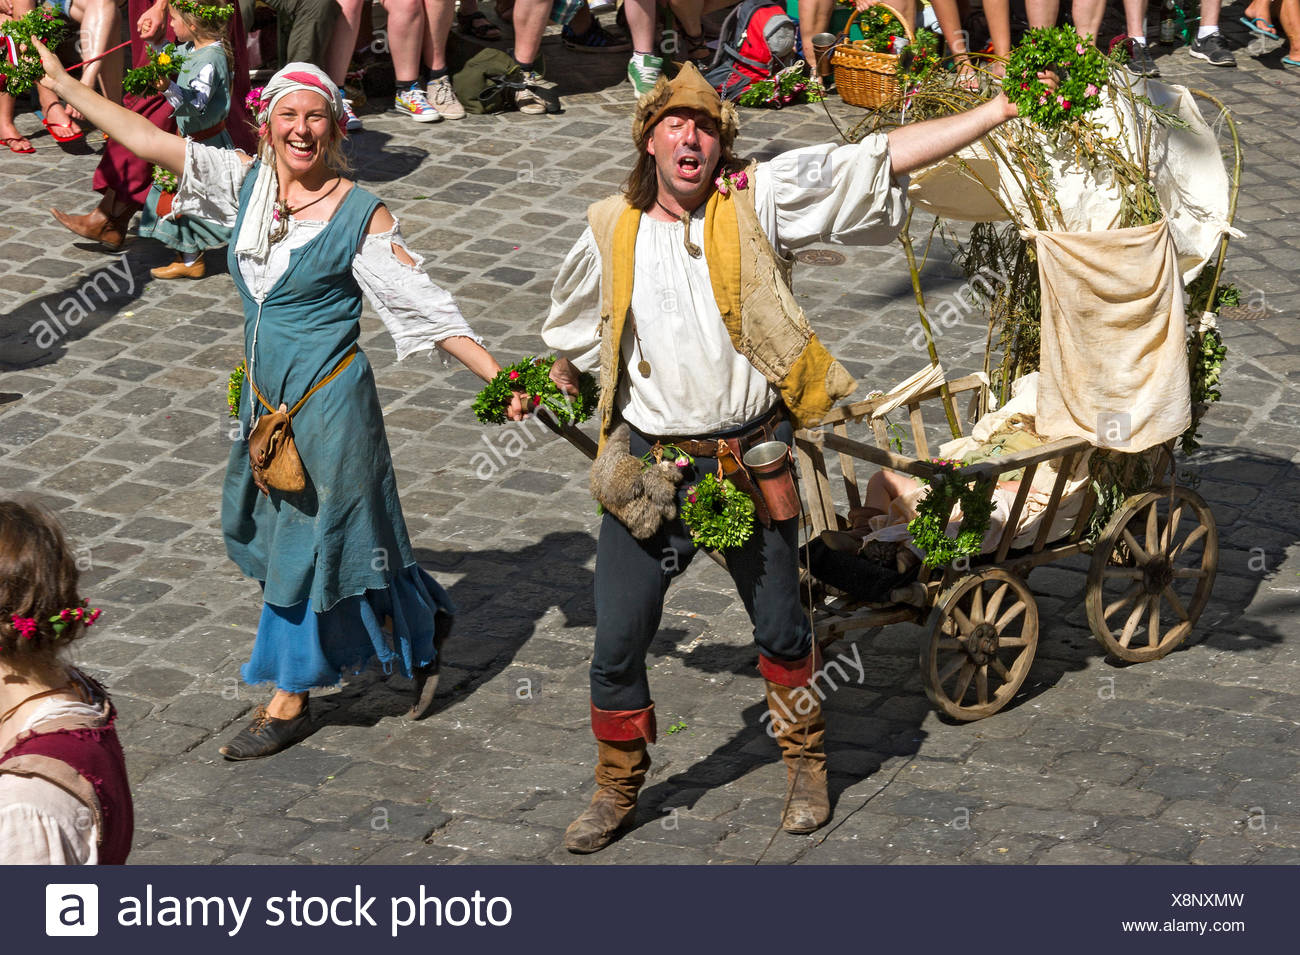 Impoverished couple pulling a baby carriage, wedding procession of the 'Landshut Wedding', historic center, Landshut - Stock Image